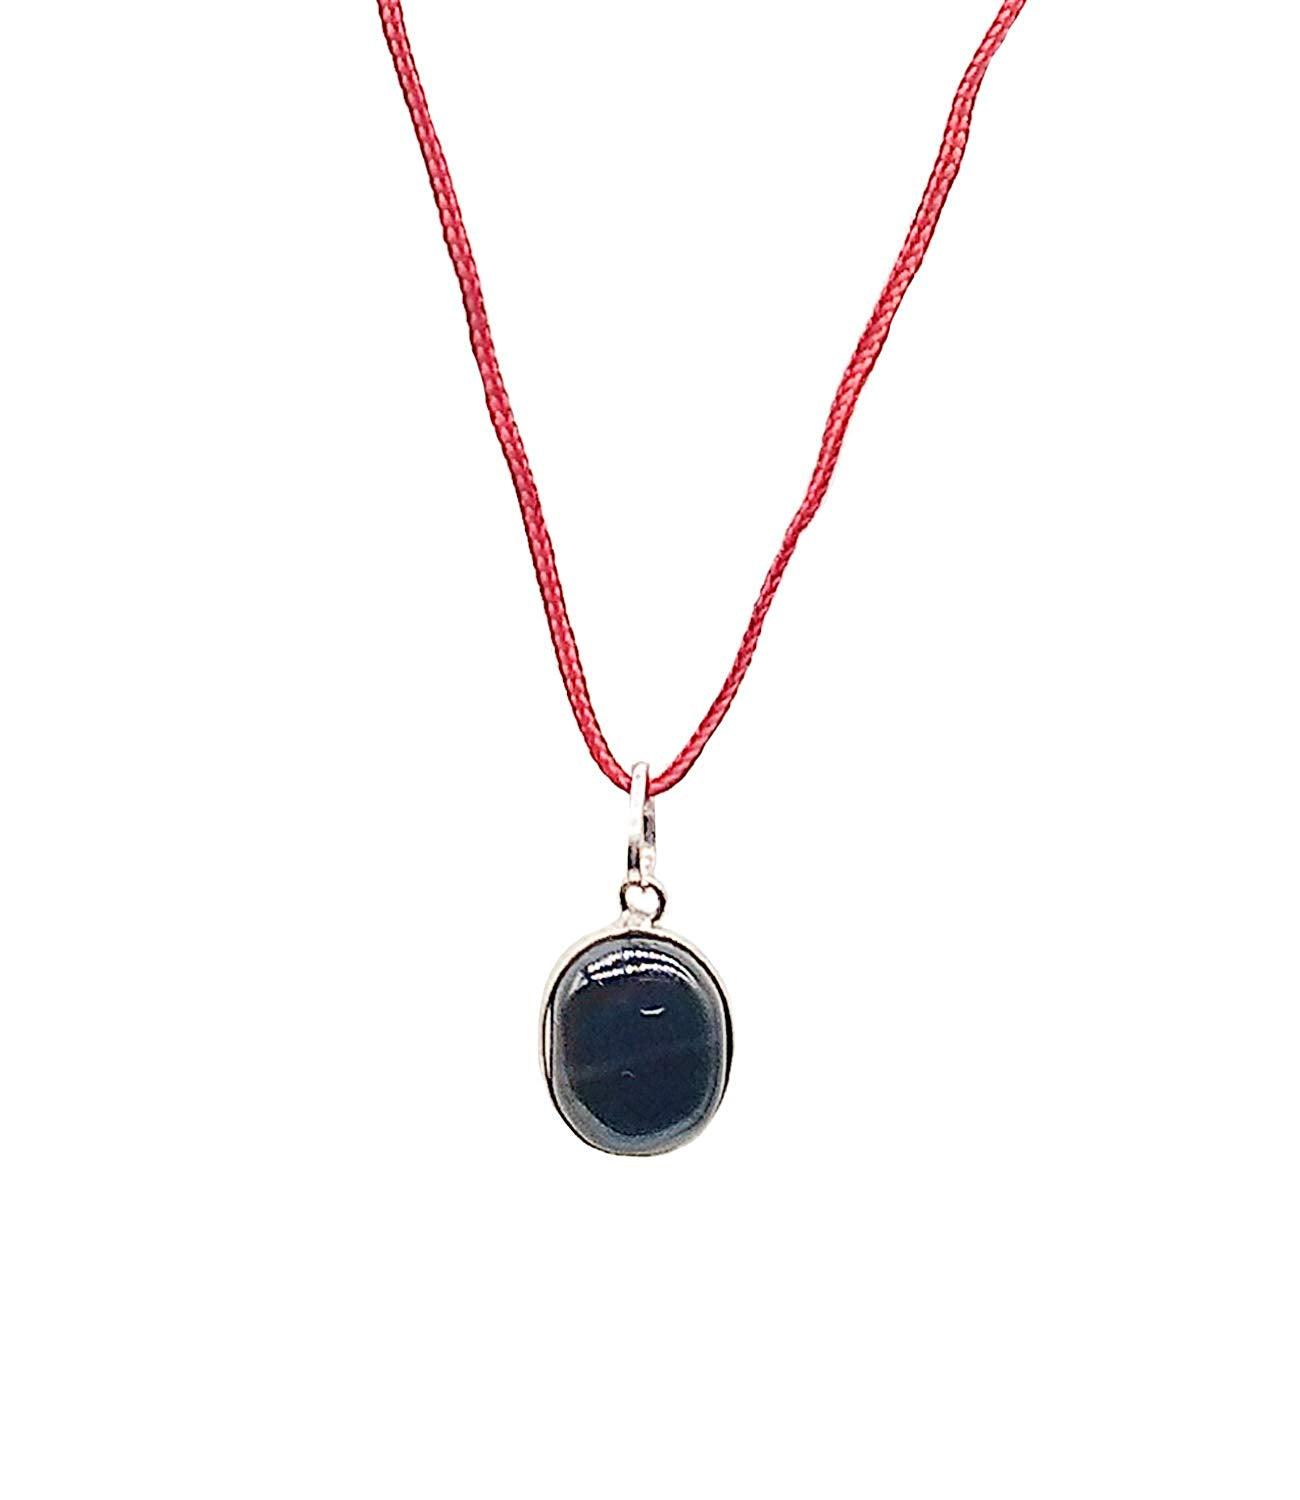 Black Stone Pendant Crystal for Men and Women - Bagaholics Gift